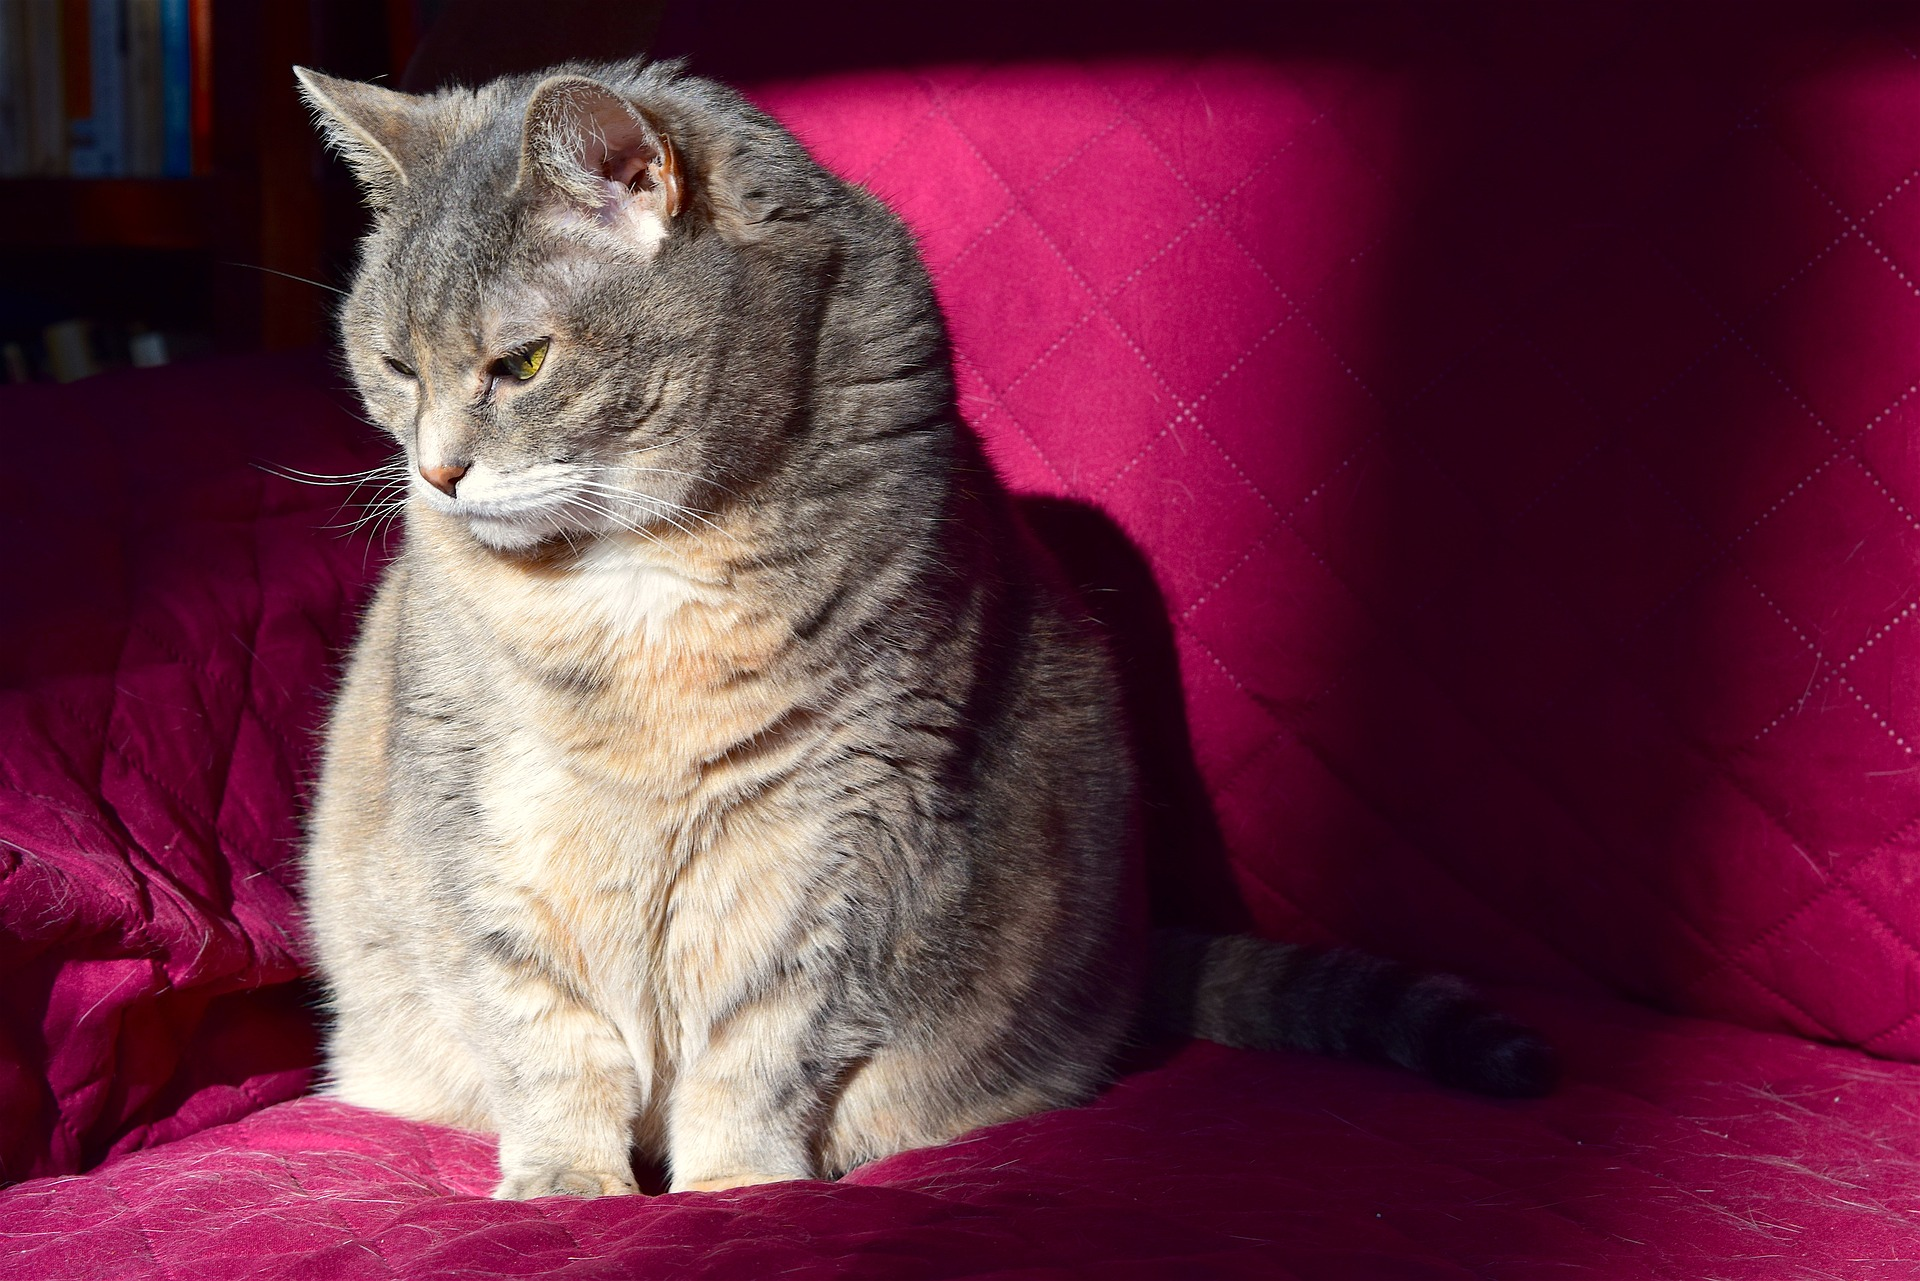 Photo of cat who may be showing subtle signs of pain